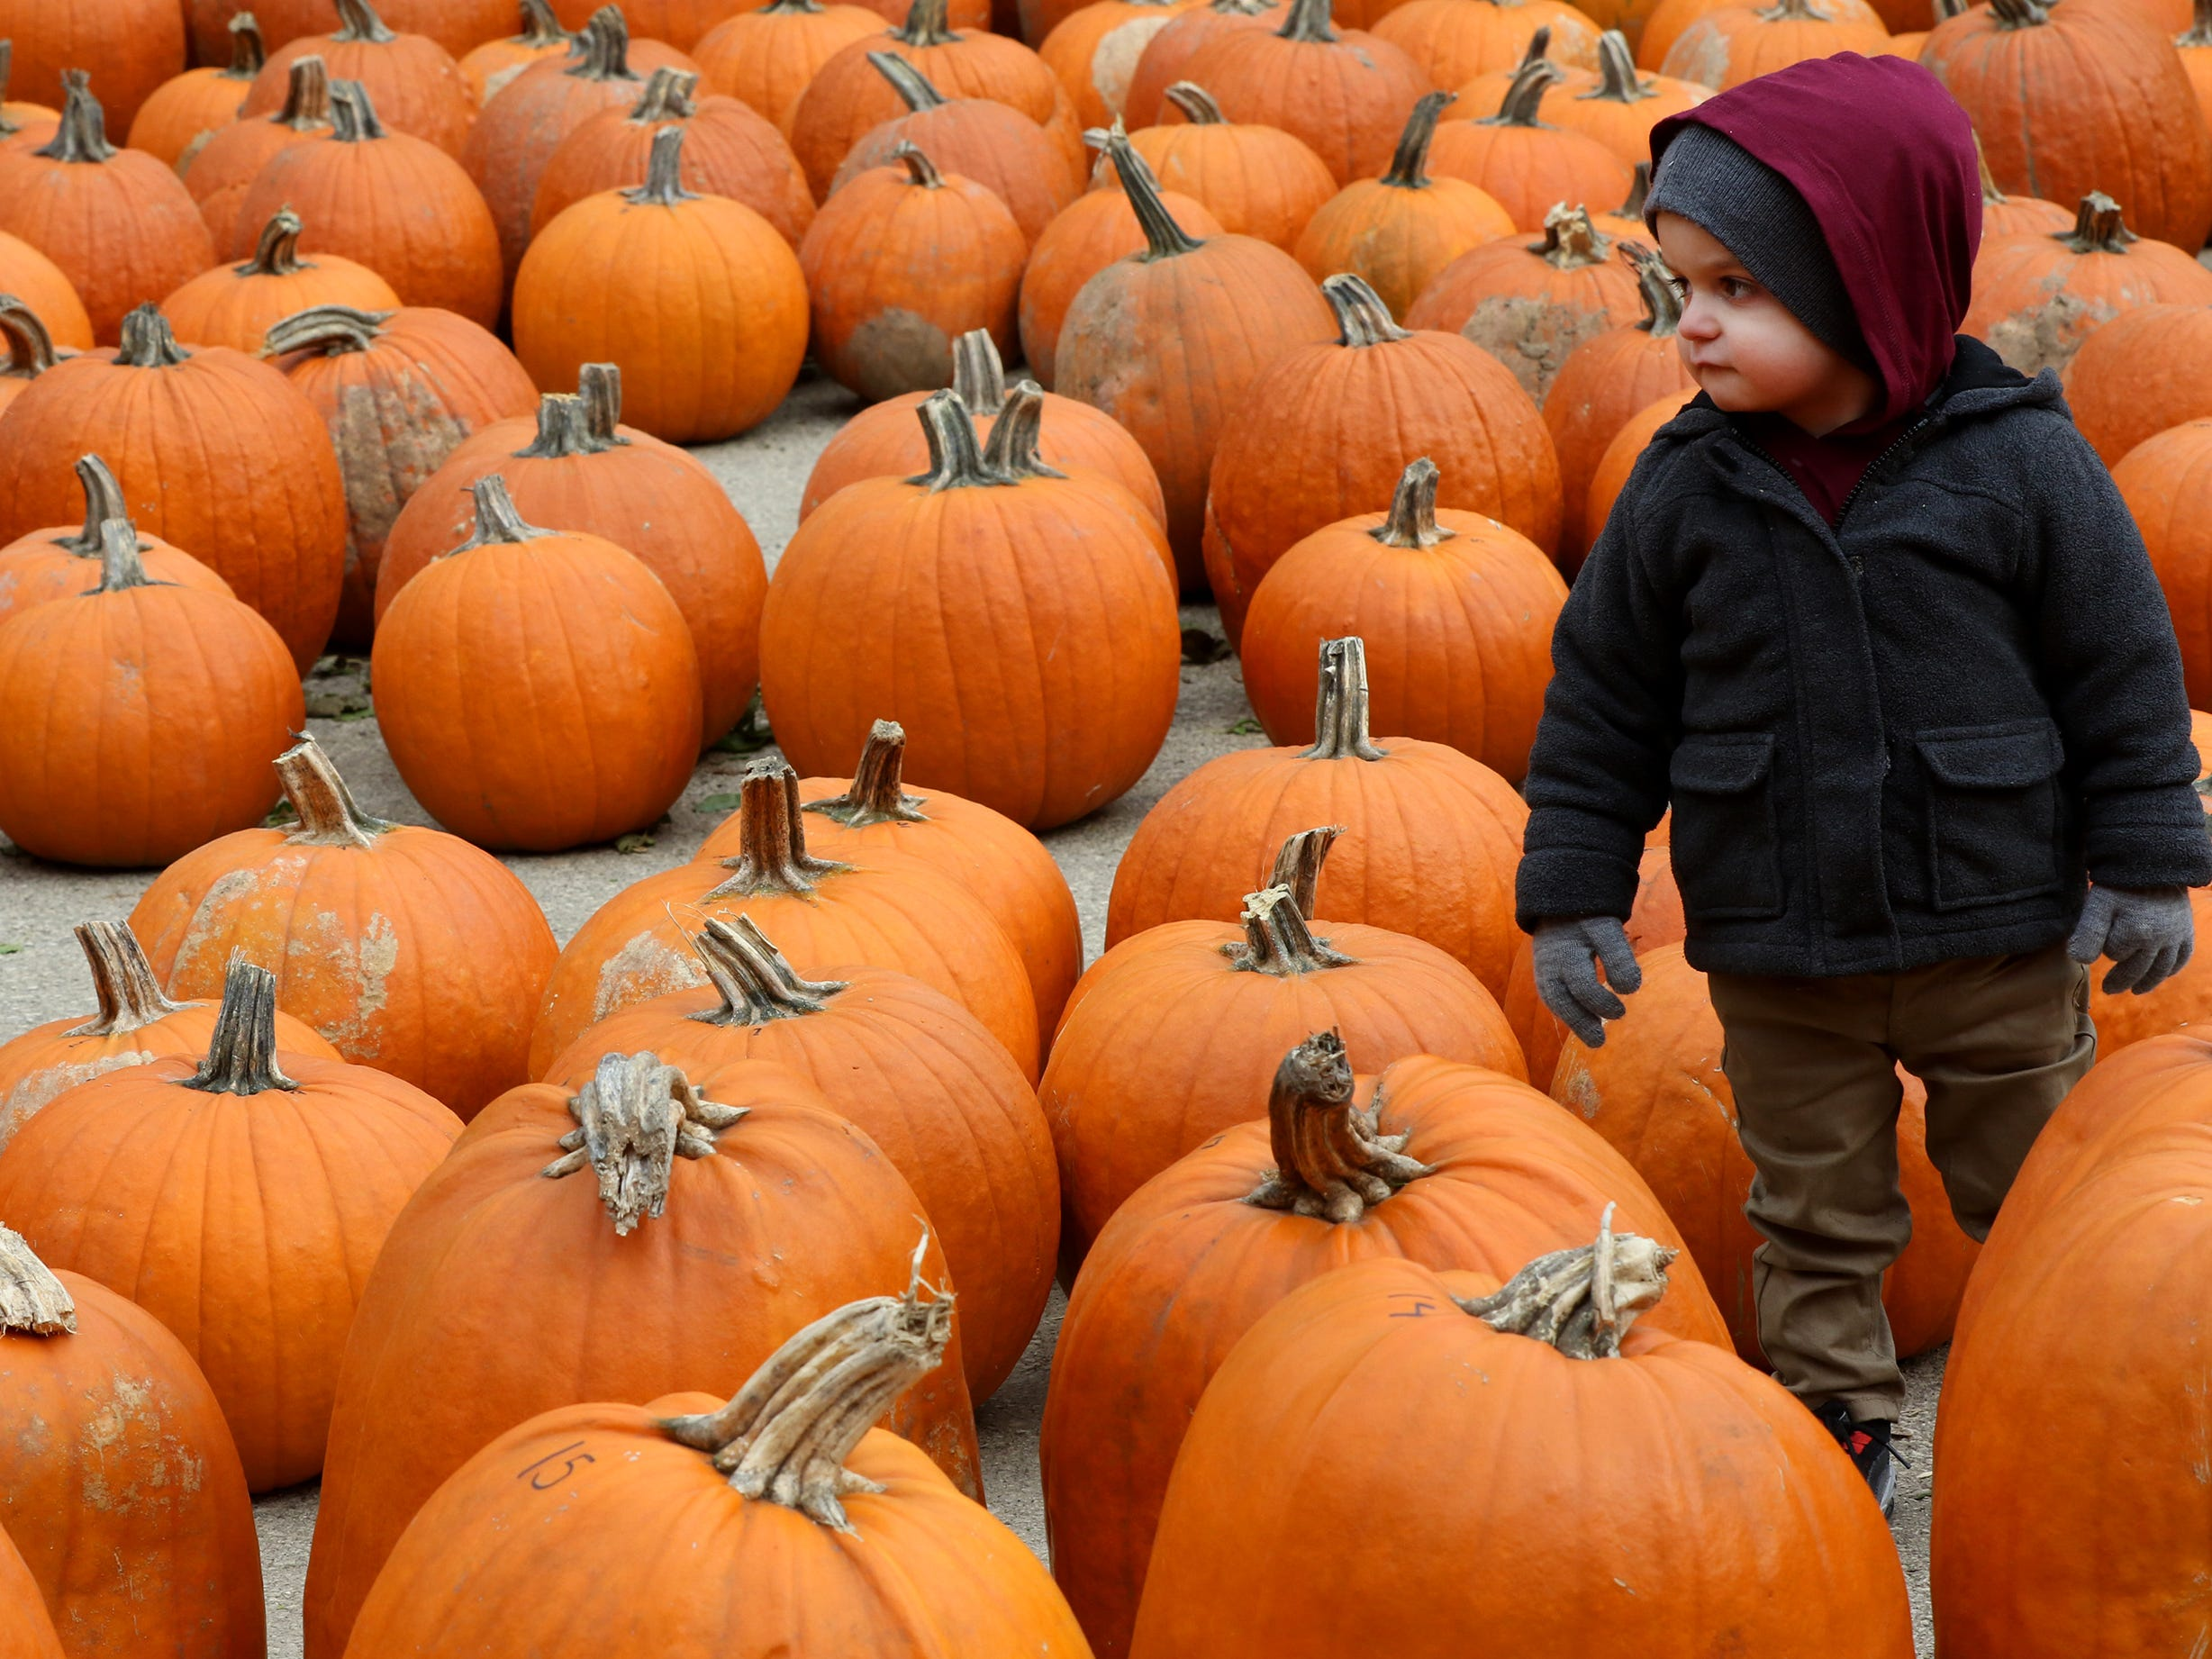 Orion Berg of Milwaukee checks out his choices at the Lindner Pumpkin Farm in New Berlin on Oct. 20.